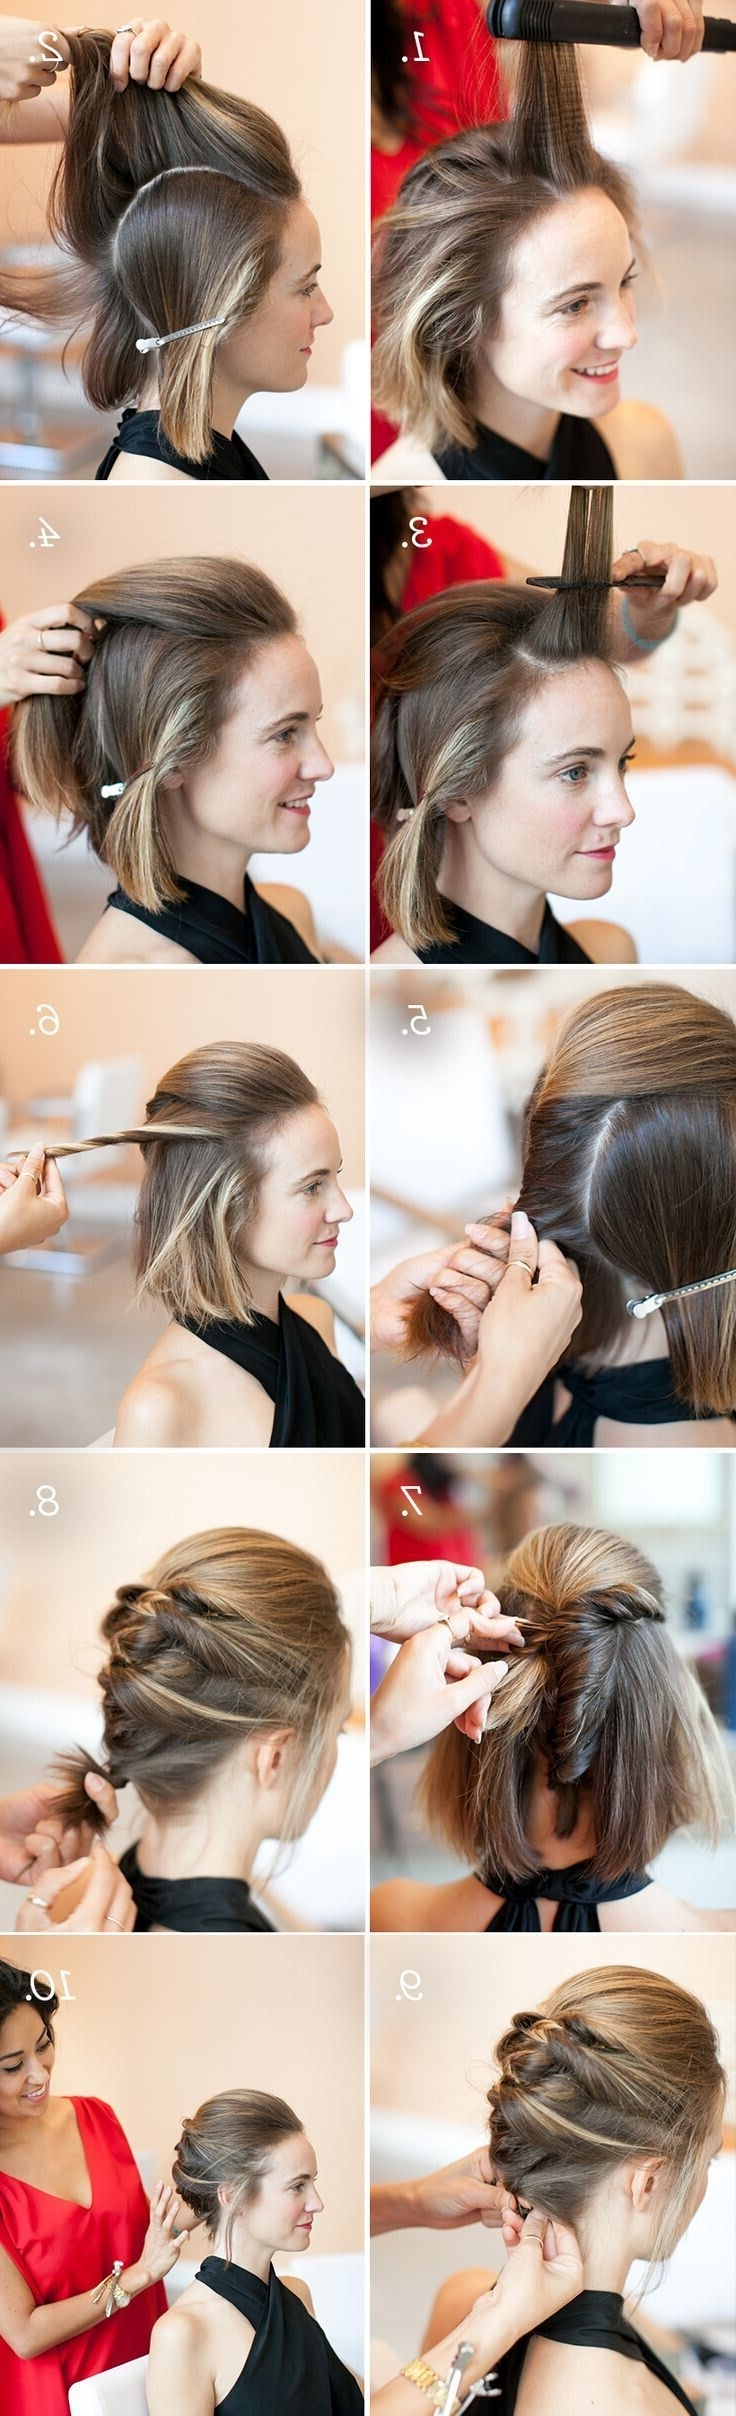 20 Exciting New Intricate Braid Updo Hairstyles – Popular Haircuts For Cute Updo Hairstyles For Short Hair (View 3 of 15)